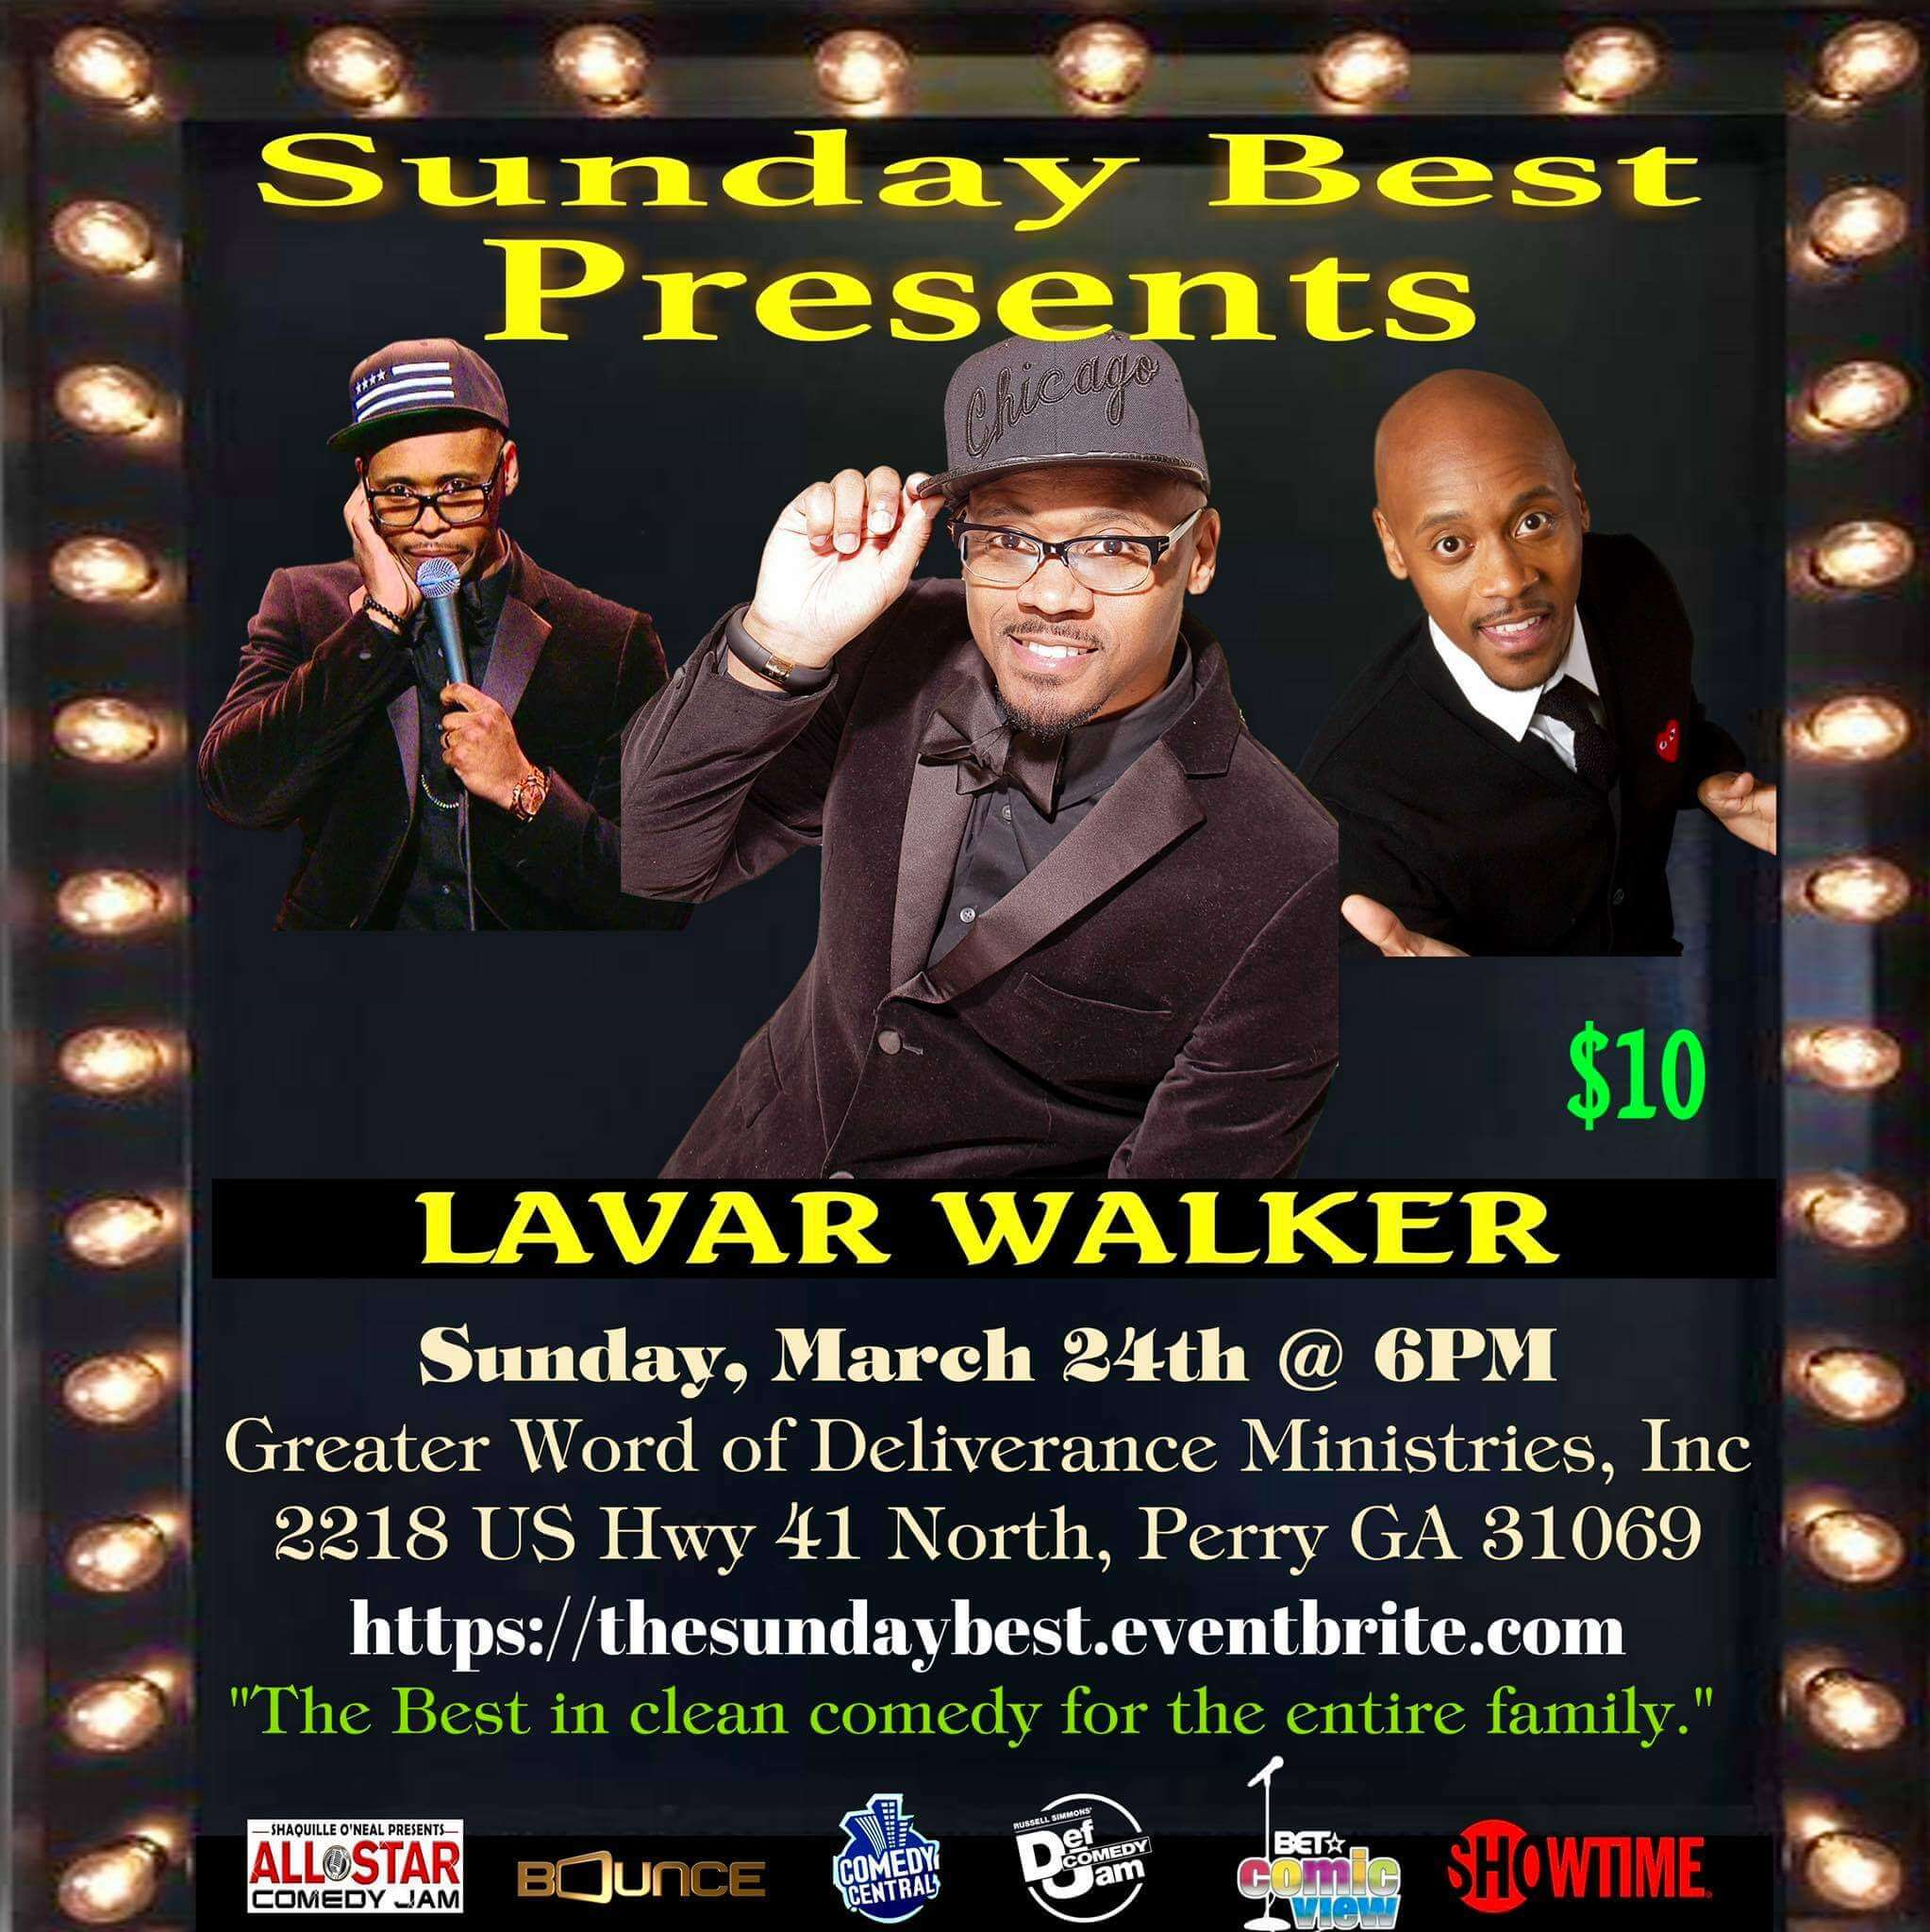 Sunday Best Presents: Lavar Walker